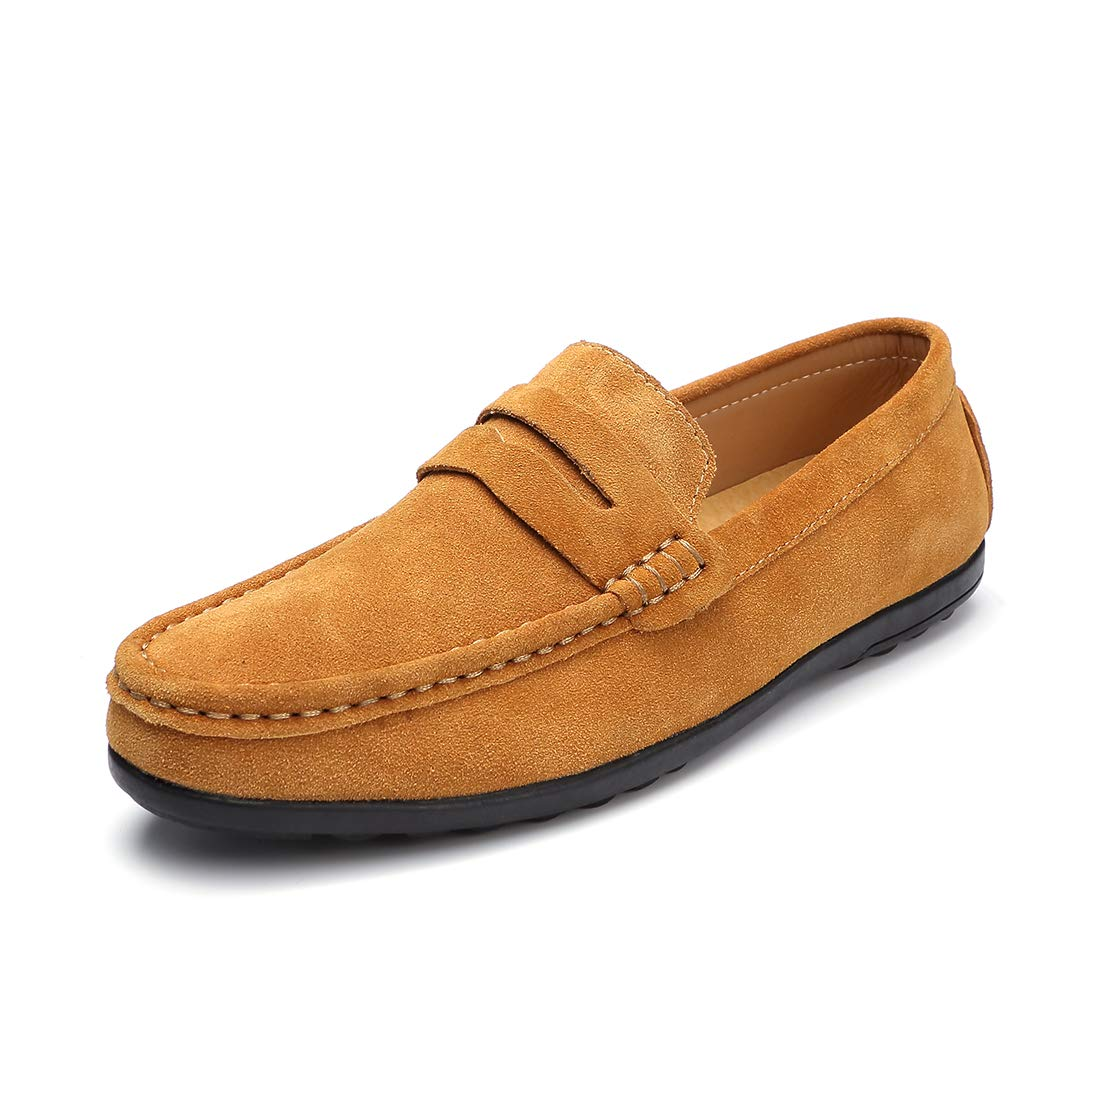 c1d15d6cf40 Ruiatoo Men s Penny Loafers Slip On Driving Boat Shoes Moccasins Footwear  Suede Leather Flat Dress Shoes